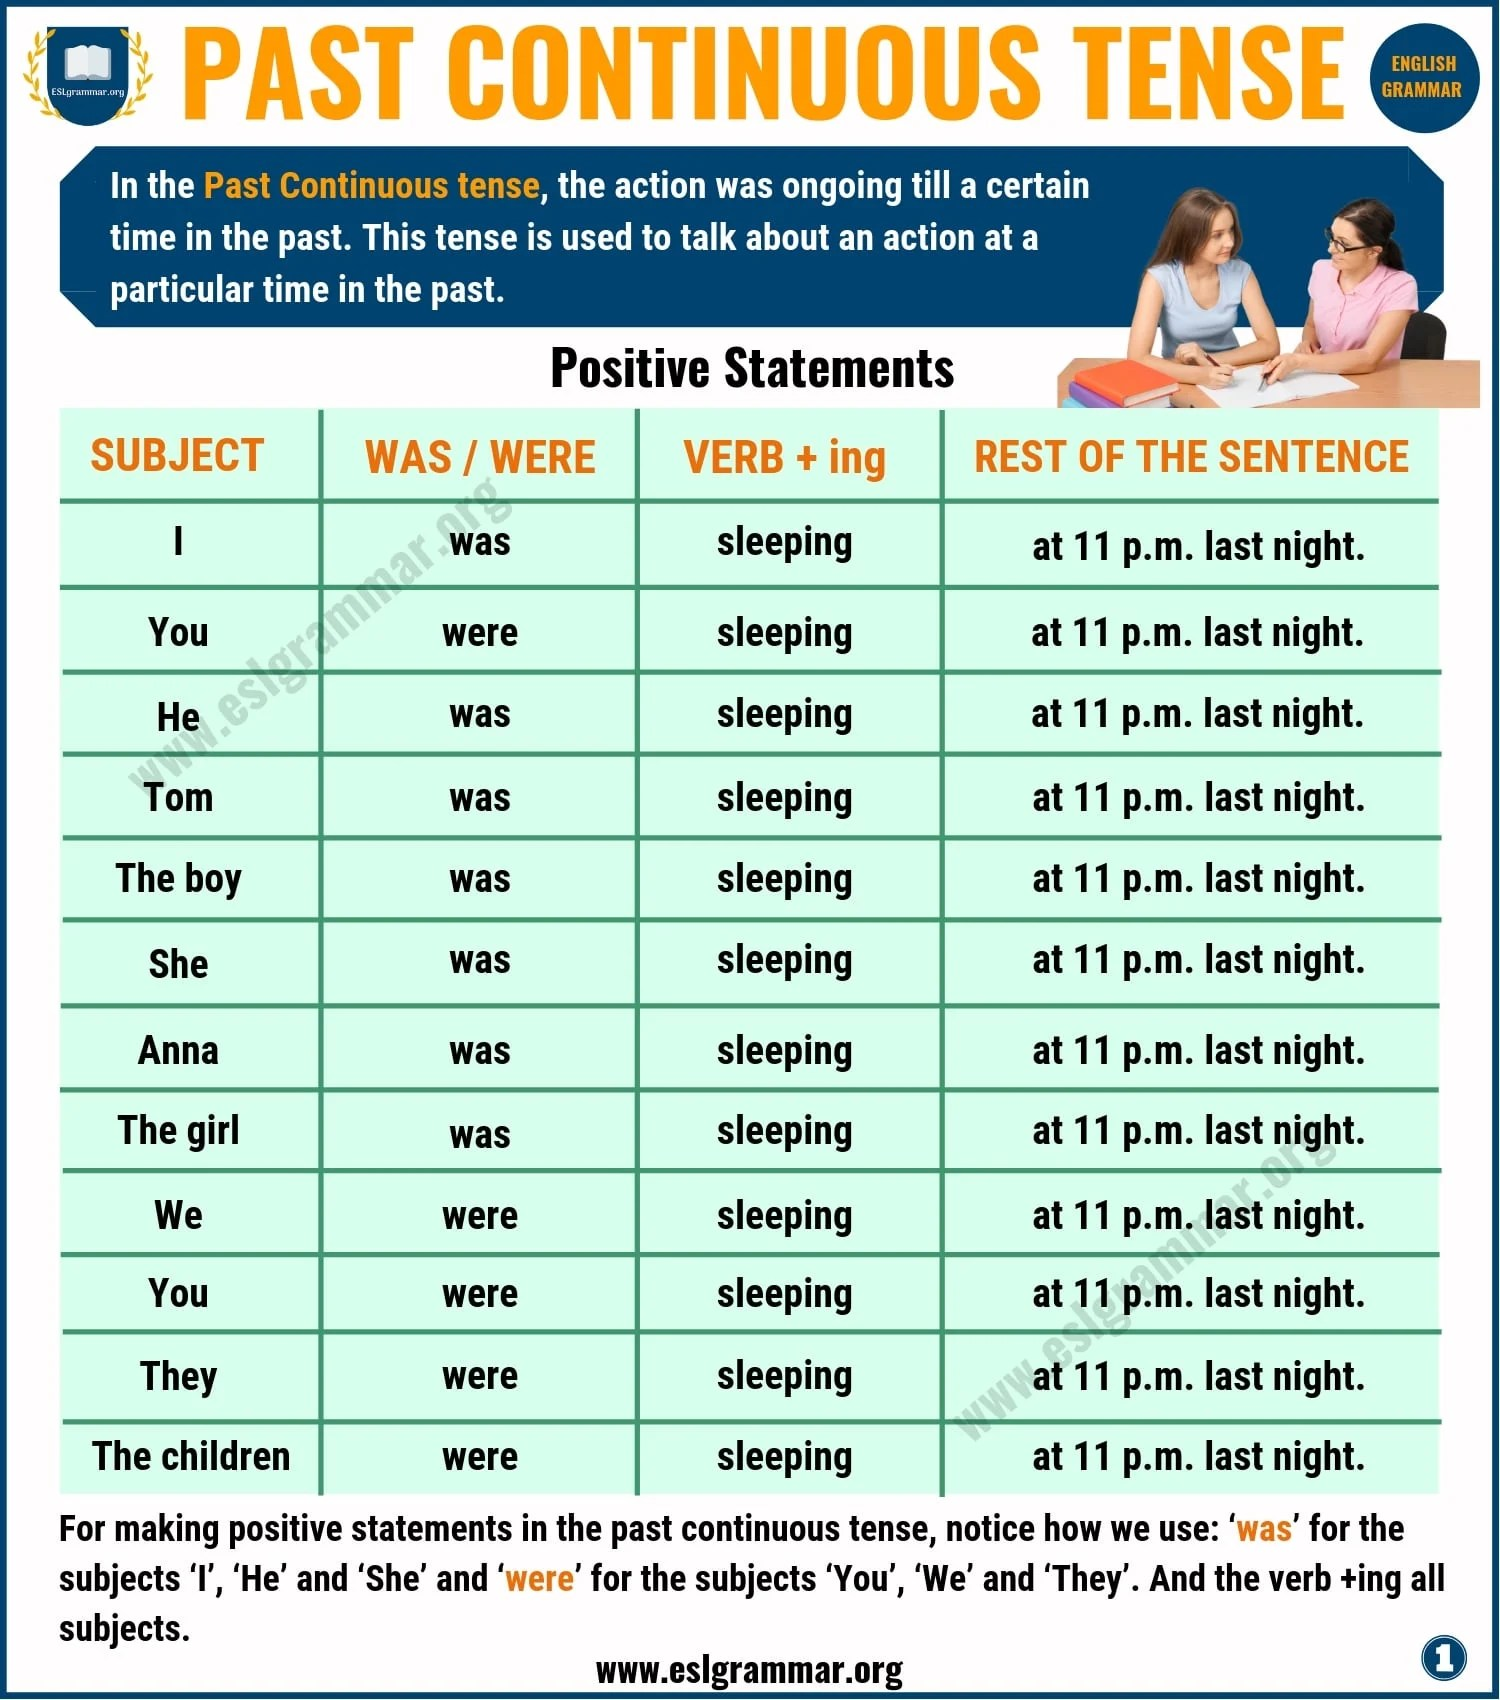 Past Continuous Tense Definition Amp Useful Examples In